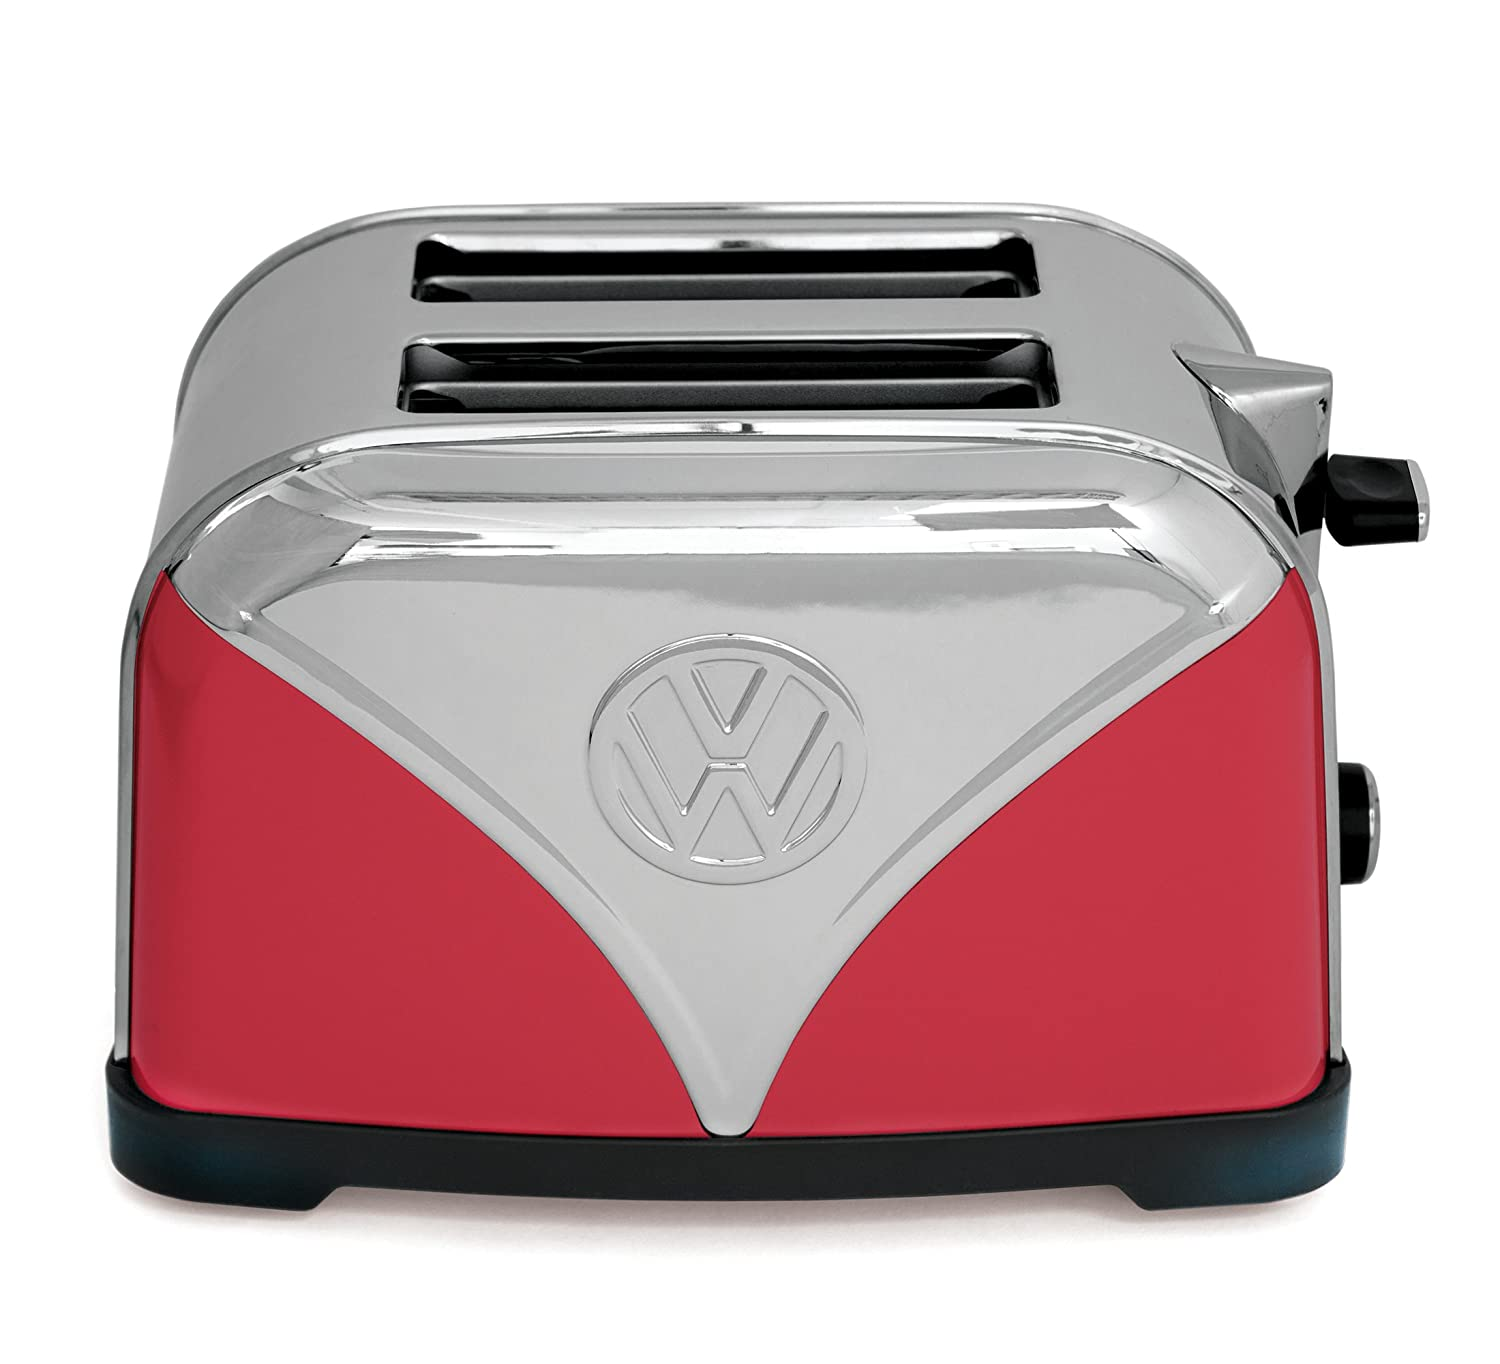 Mini Toaster For Camper ~ Fizz creations vw camper mini van volkswagen toaster red